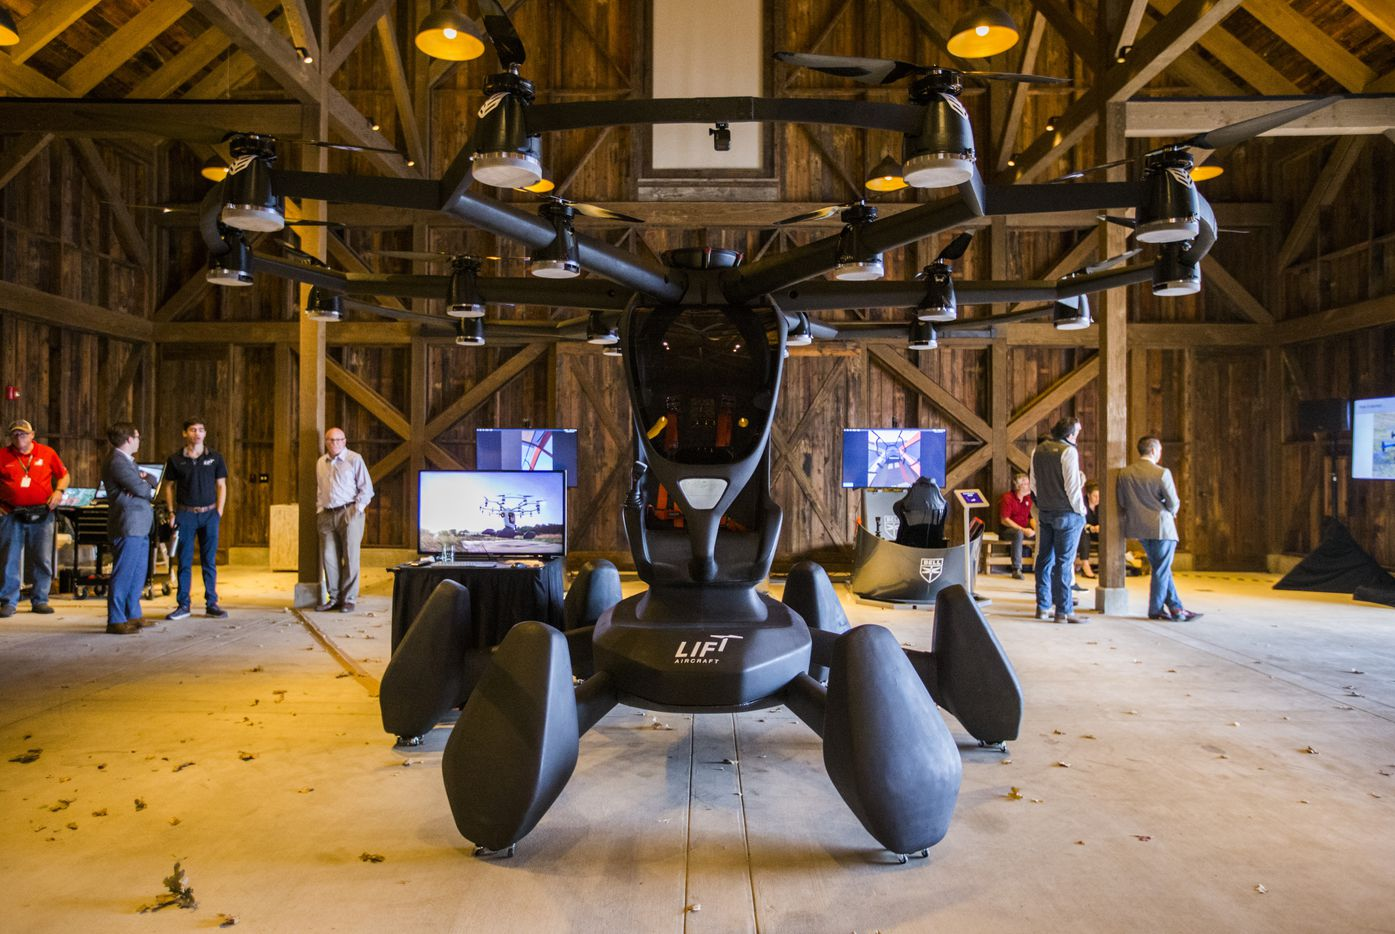 Austin-based LIFT Aircraft showed off its Hexa at the summit. The giant drone-like aircraft has room for a single passenger. The company plans to kick off a road trip across the U.S. later this year or in early 2020 to allow people to ride in it. (Ashley Landis/The Dallas Morning News)